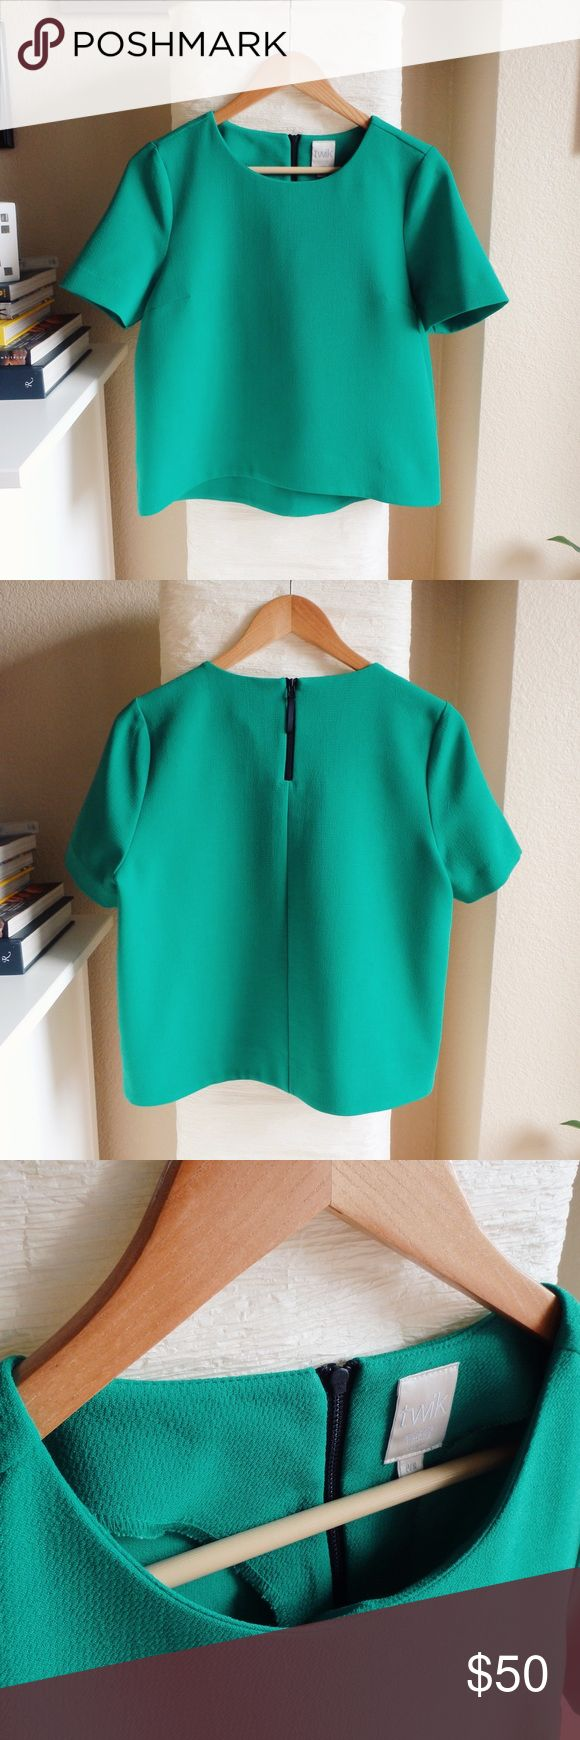 """Emerald Green Short Sleeve Blouse Amazing crepe short sleeved top - Rich emerald green - 100% polyester - Back zipper closure - Measurements: Bust: 19 3/4"""", Length: 21"""" - Condition: Like new, no holes, stains or an signs or wear - Worn once - Smoke free, pet free home - Thanks for stopping by! Twik Tops Blouses"""